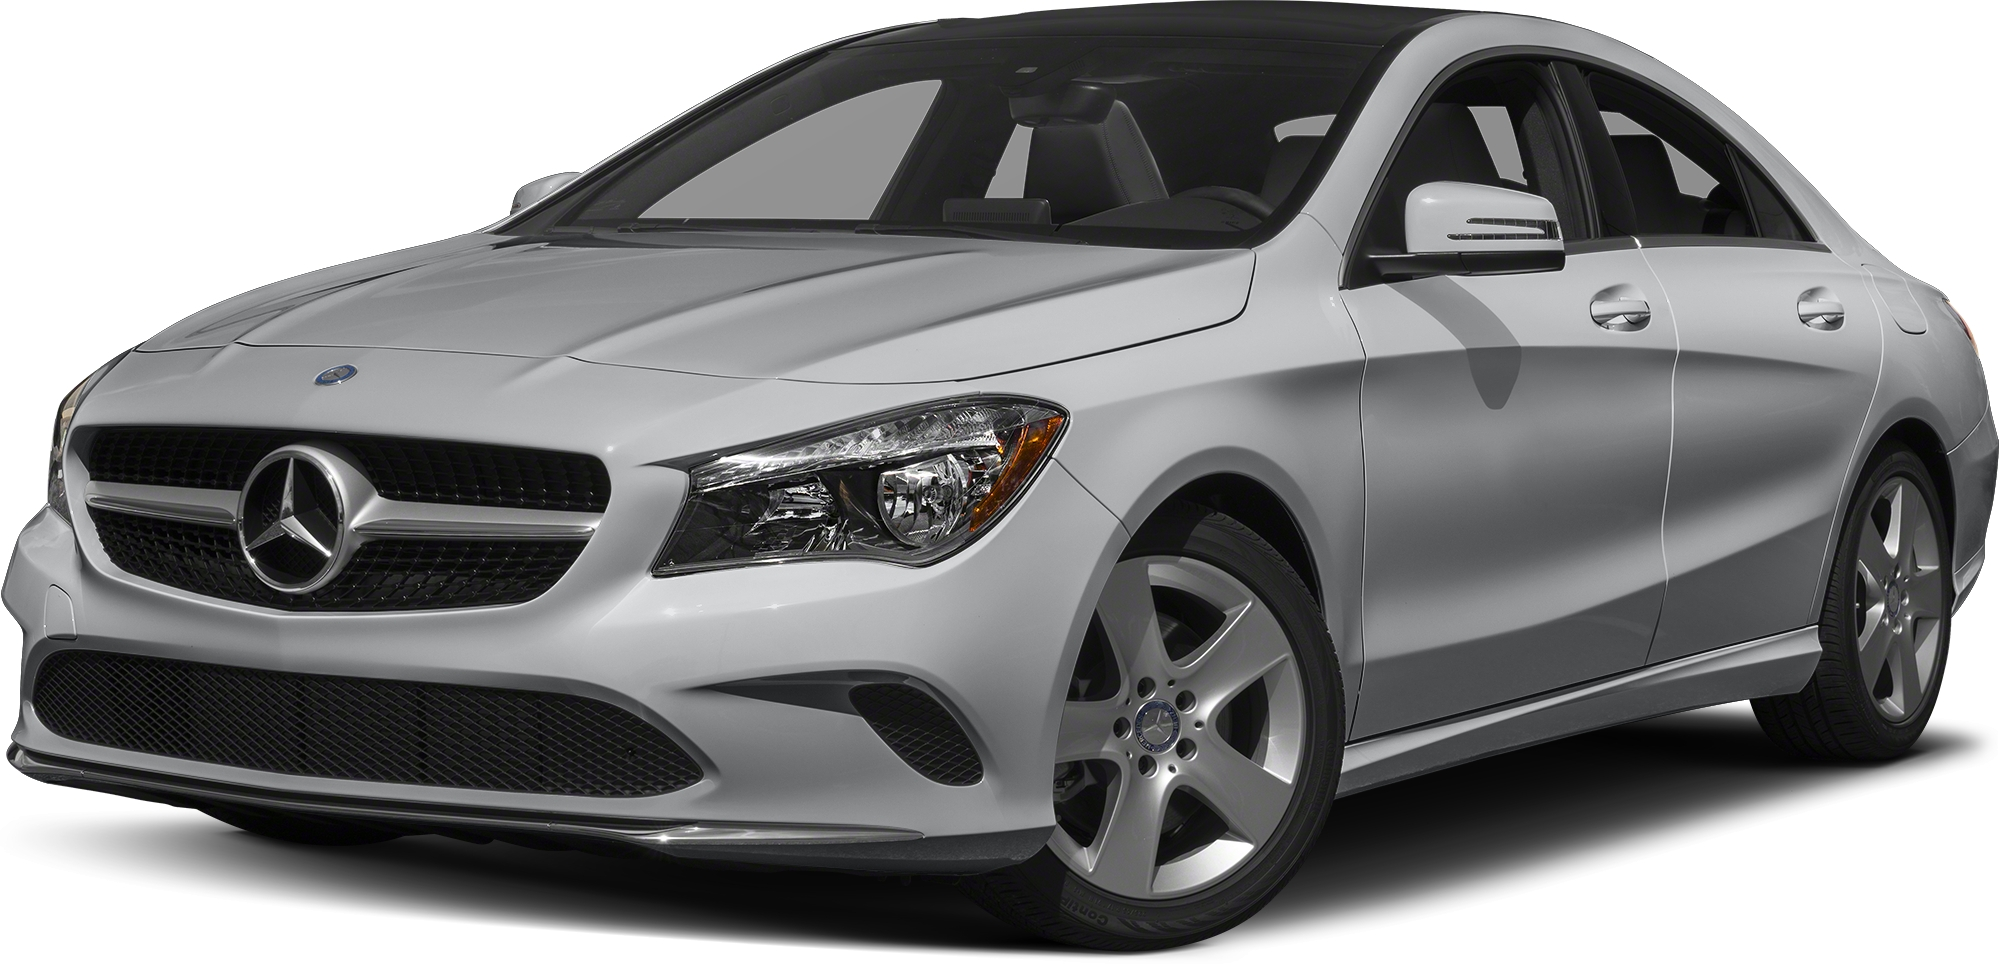 Car Lease Deals Near Me >> 2018 Mercedes-Benz CLA 250 COUPE 20925378 | For Sale, Price, Purchase, Lease, Near Me | Serving ...